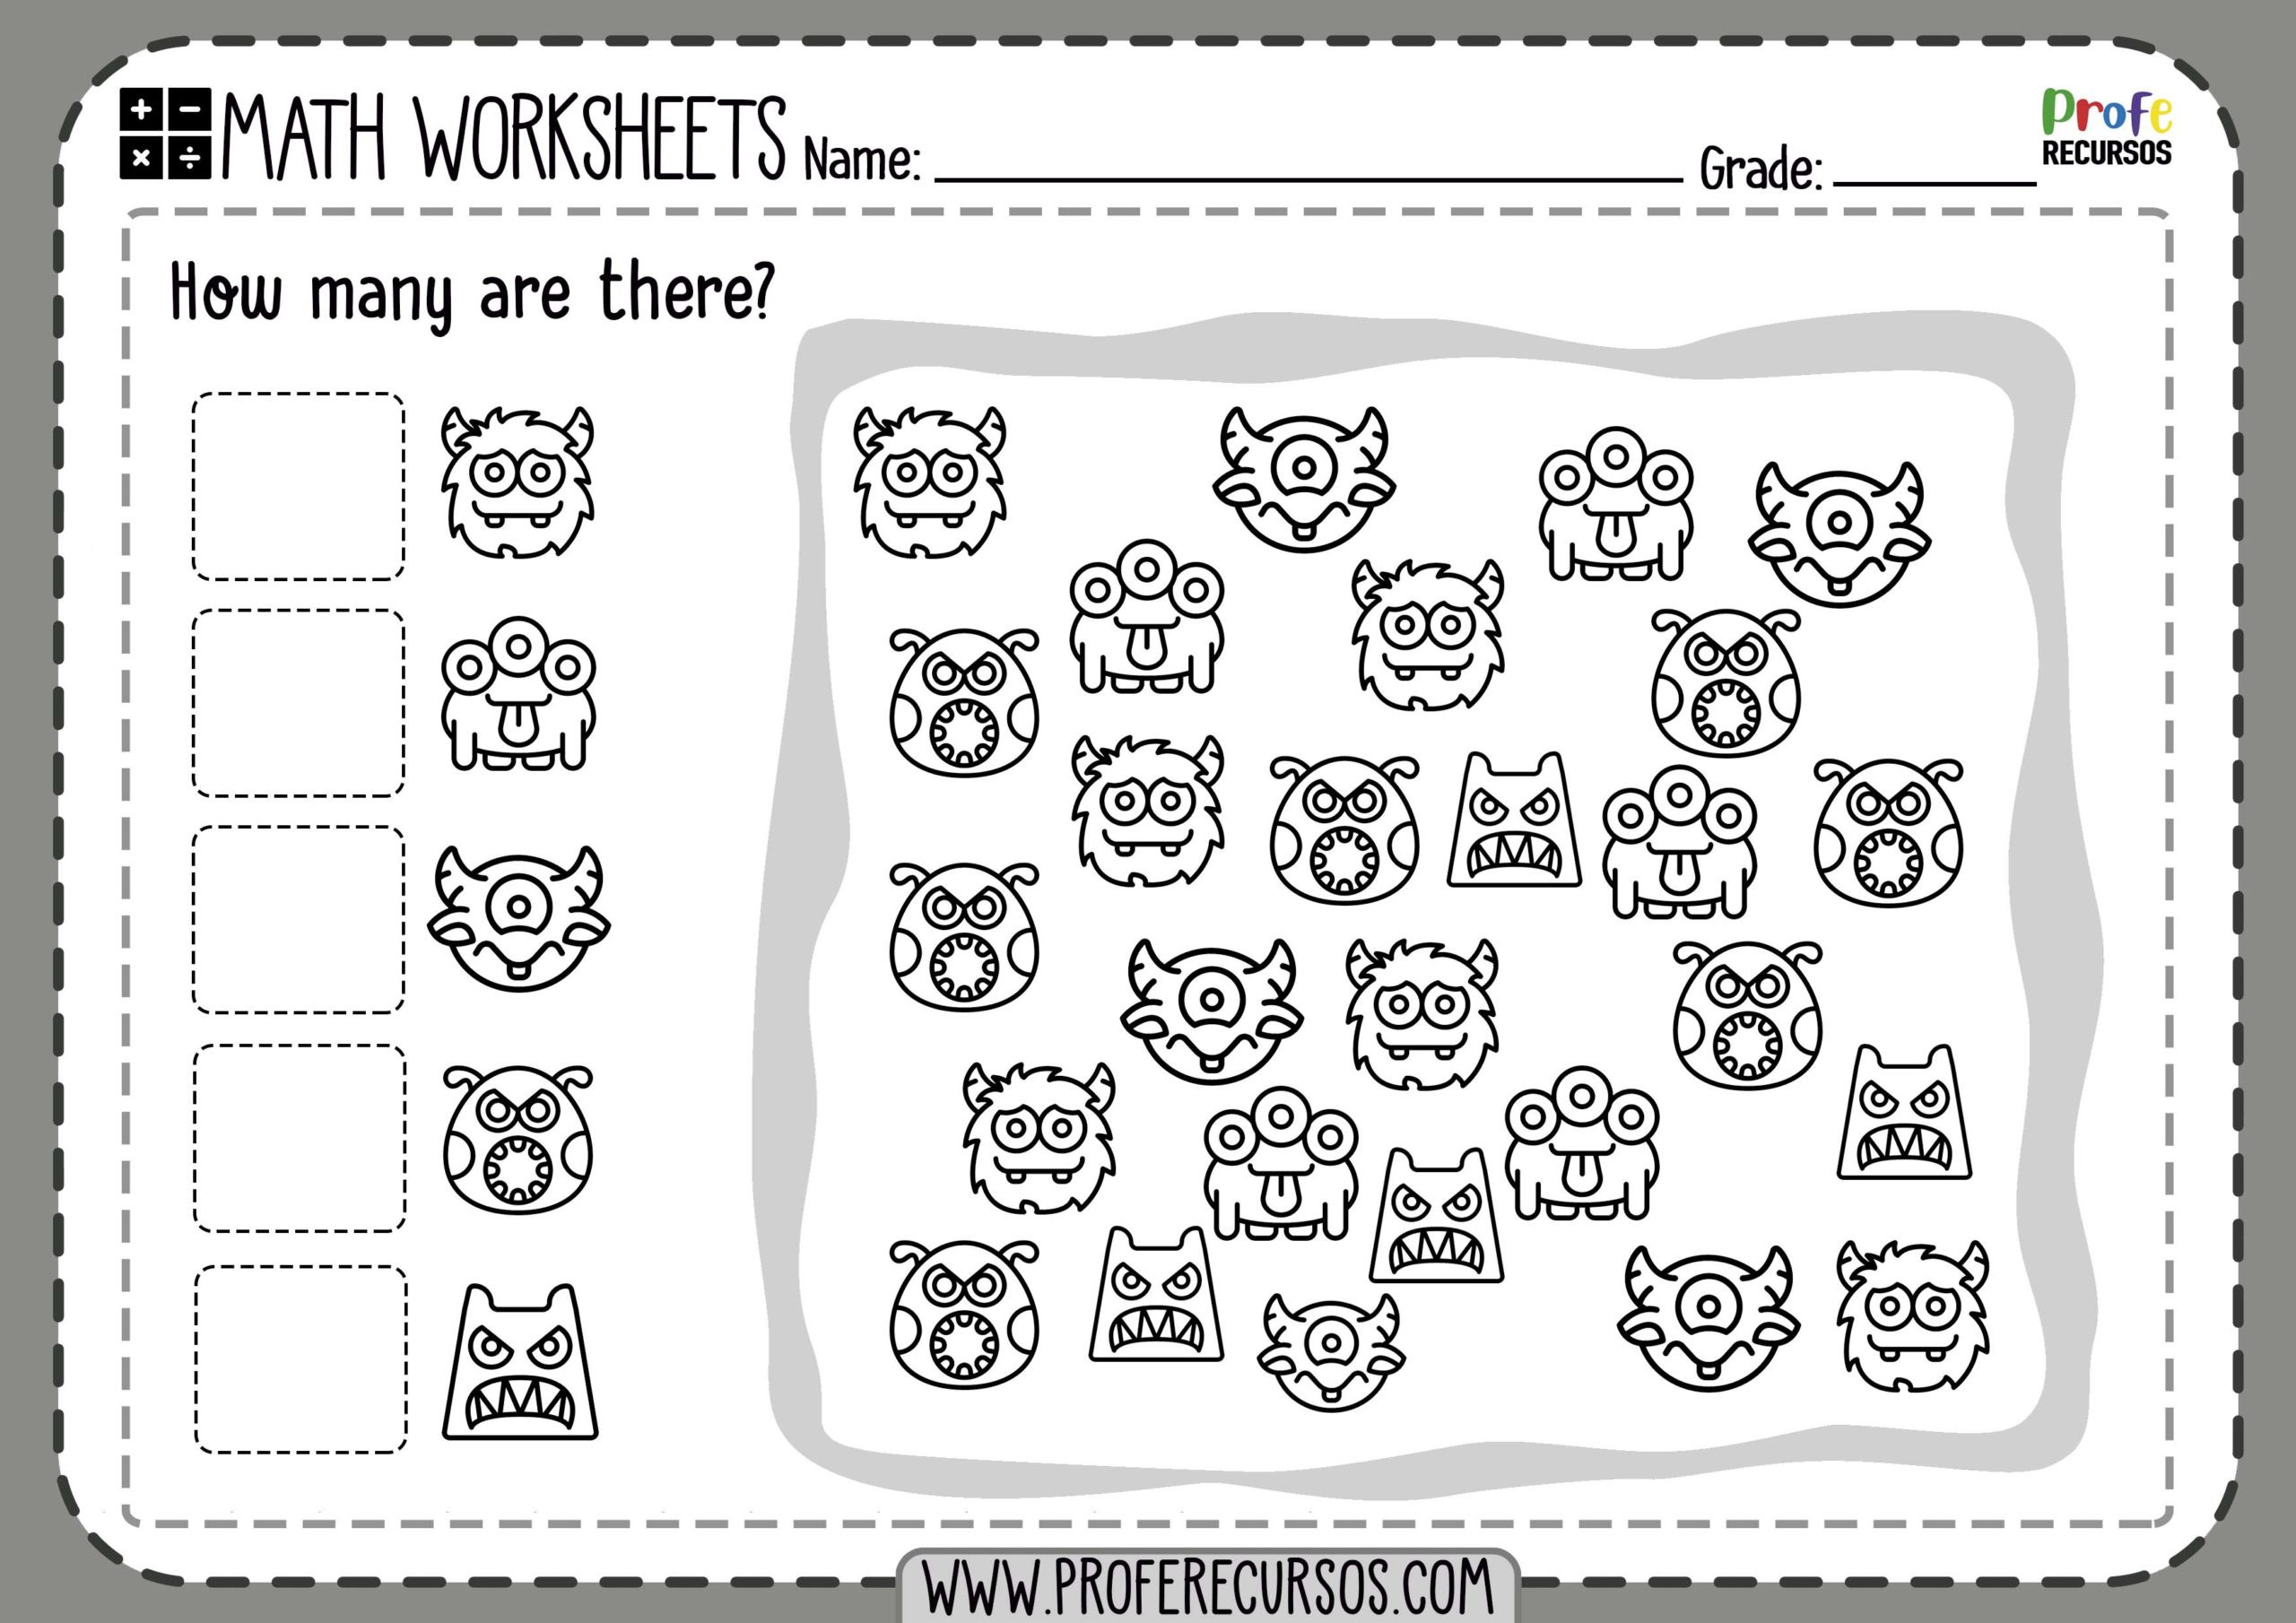 Preschool Addition Worksheets Printable Worksheets Kinder Math Worksheets Printables Free for